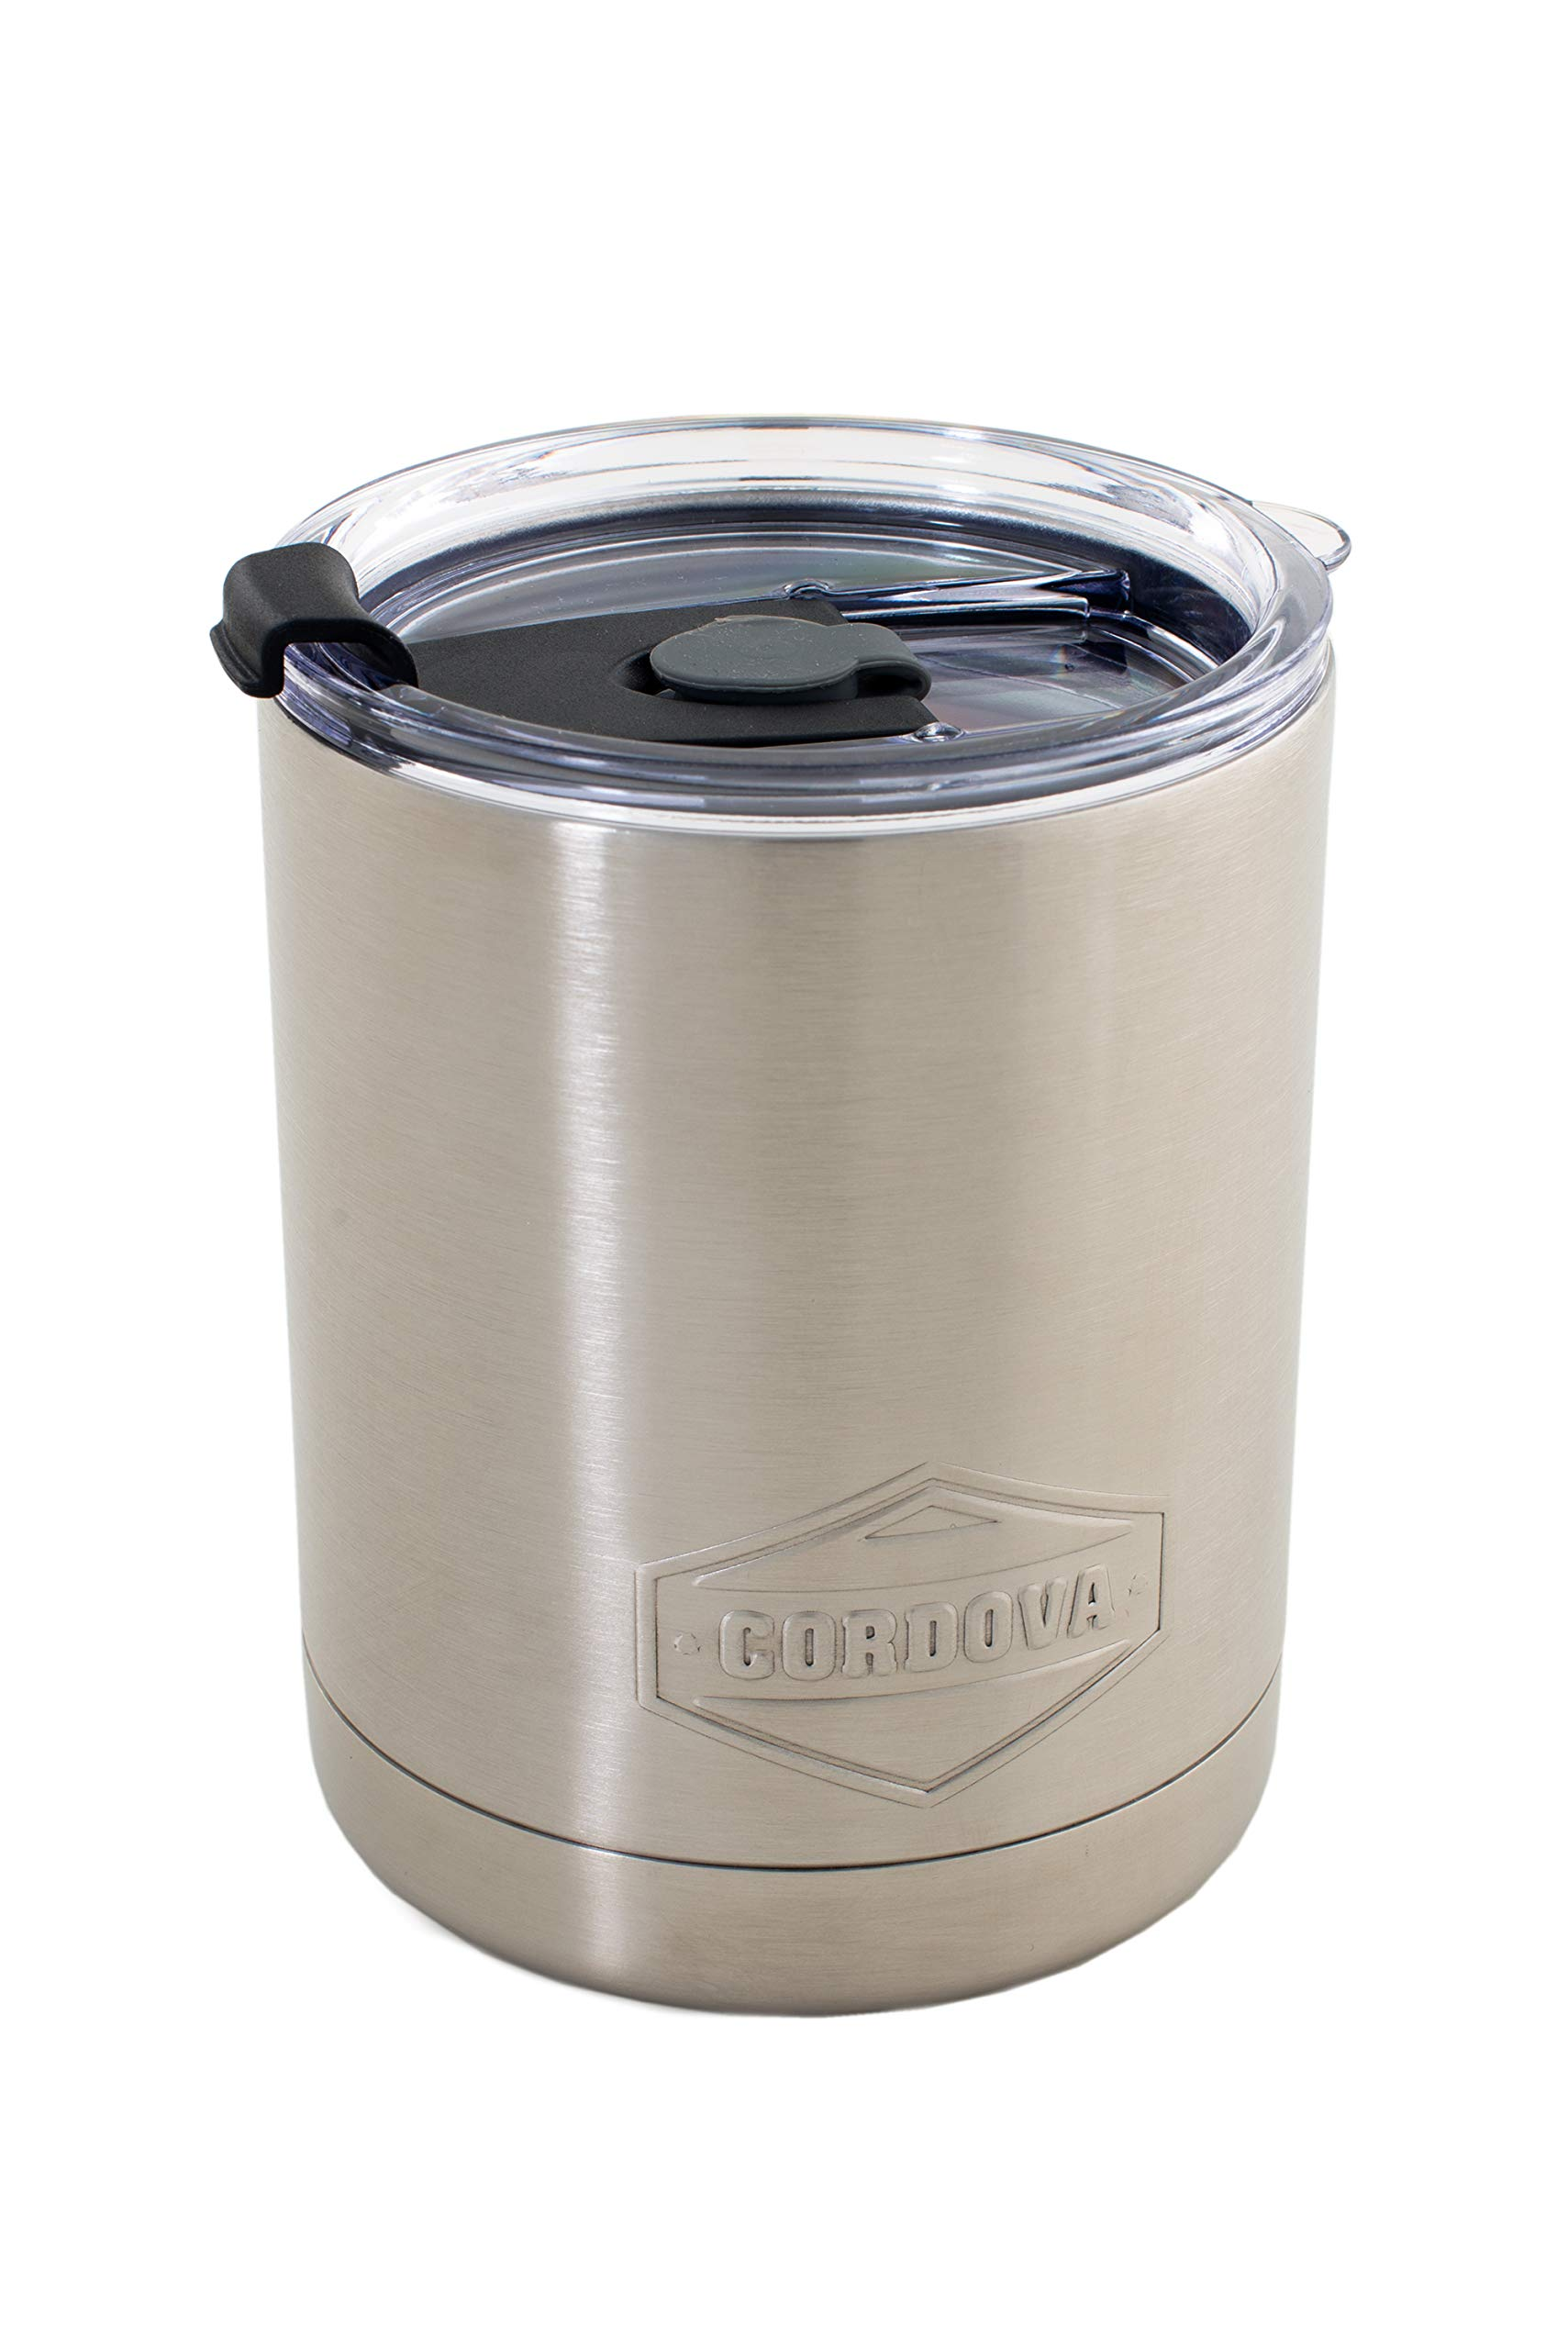 Cordova Coolers Stainless Steel Tumbler, 10 oz